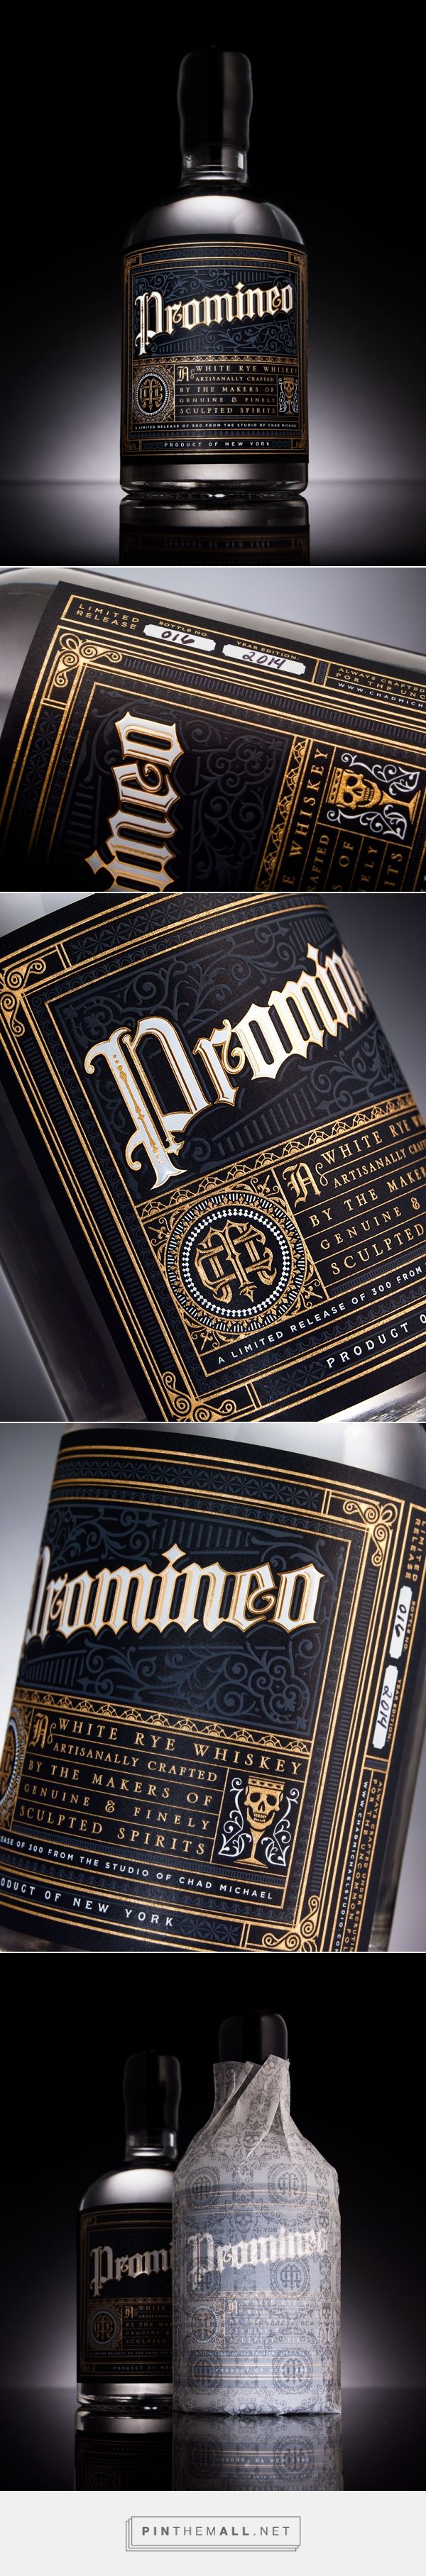 Promineo Whiskey — The Dieline - Branding & Packaging Design (Bottle Photography)